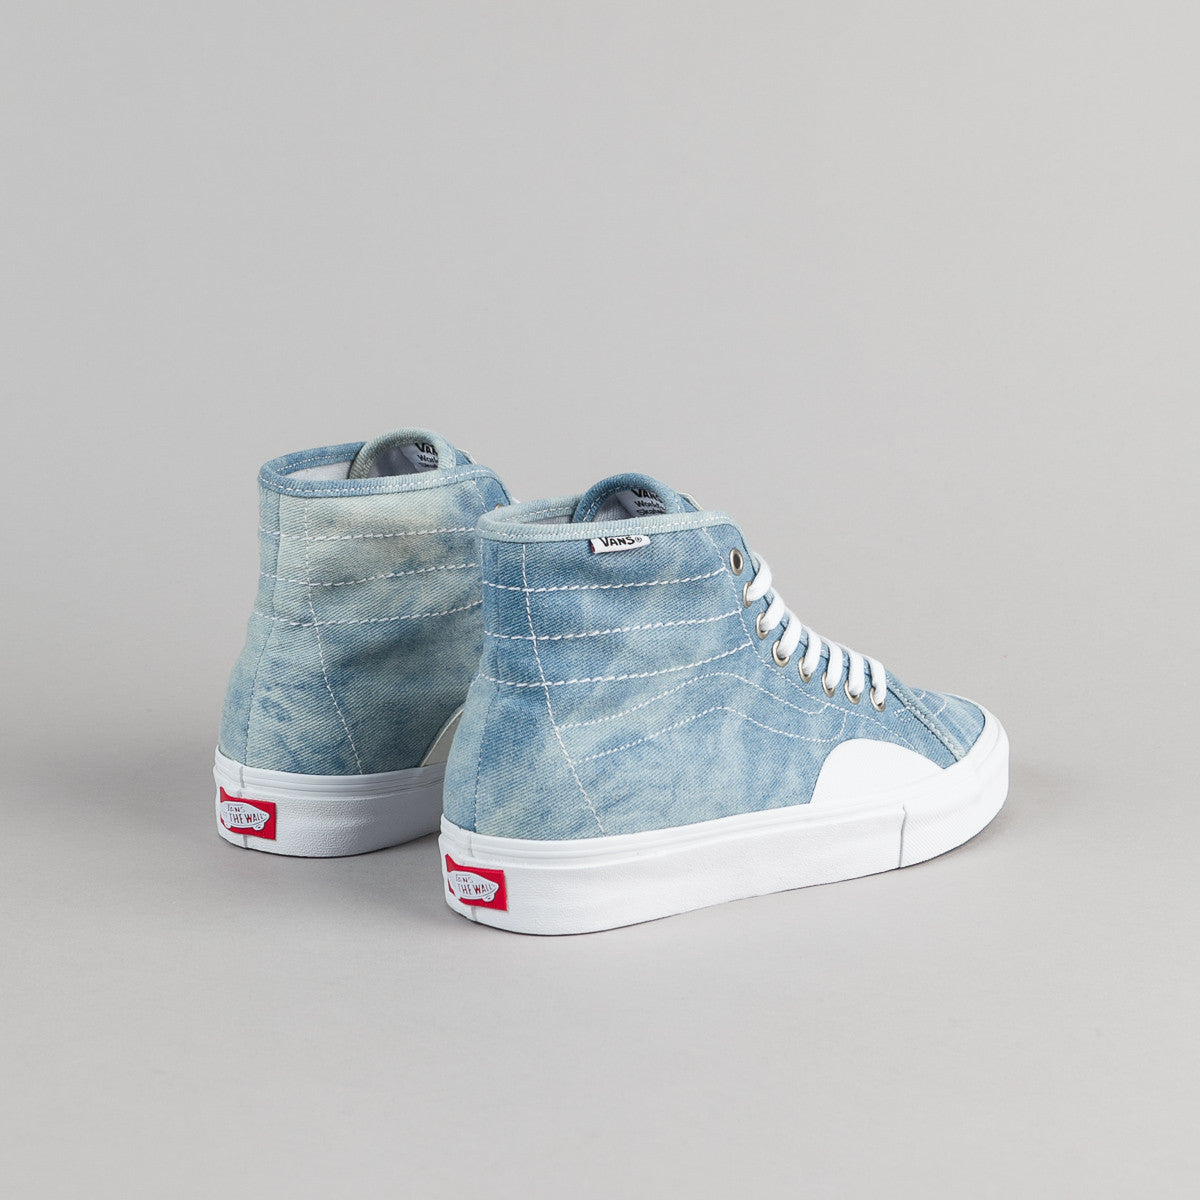 Vans AV Classic High Shoes - Denim / White